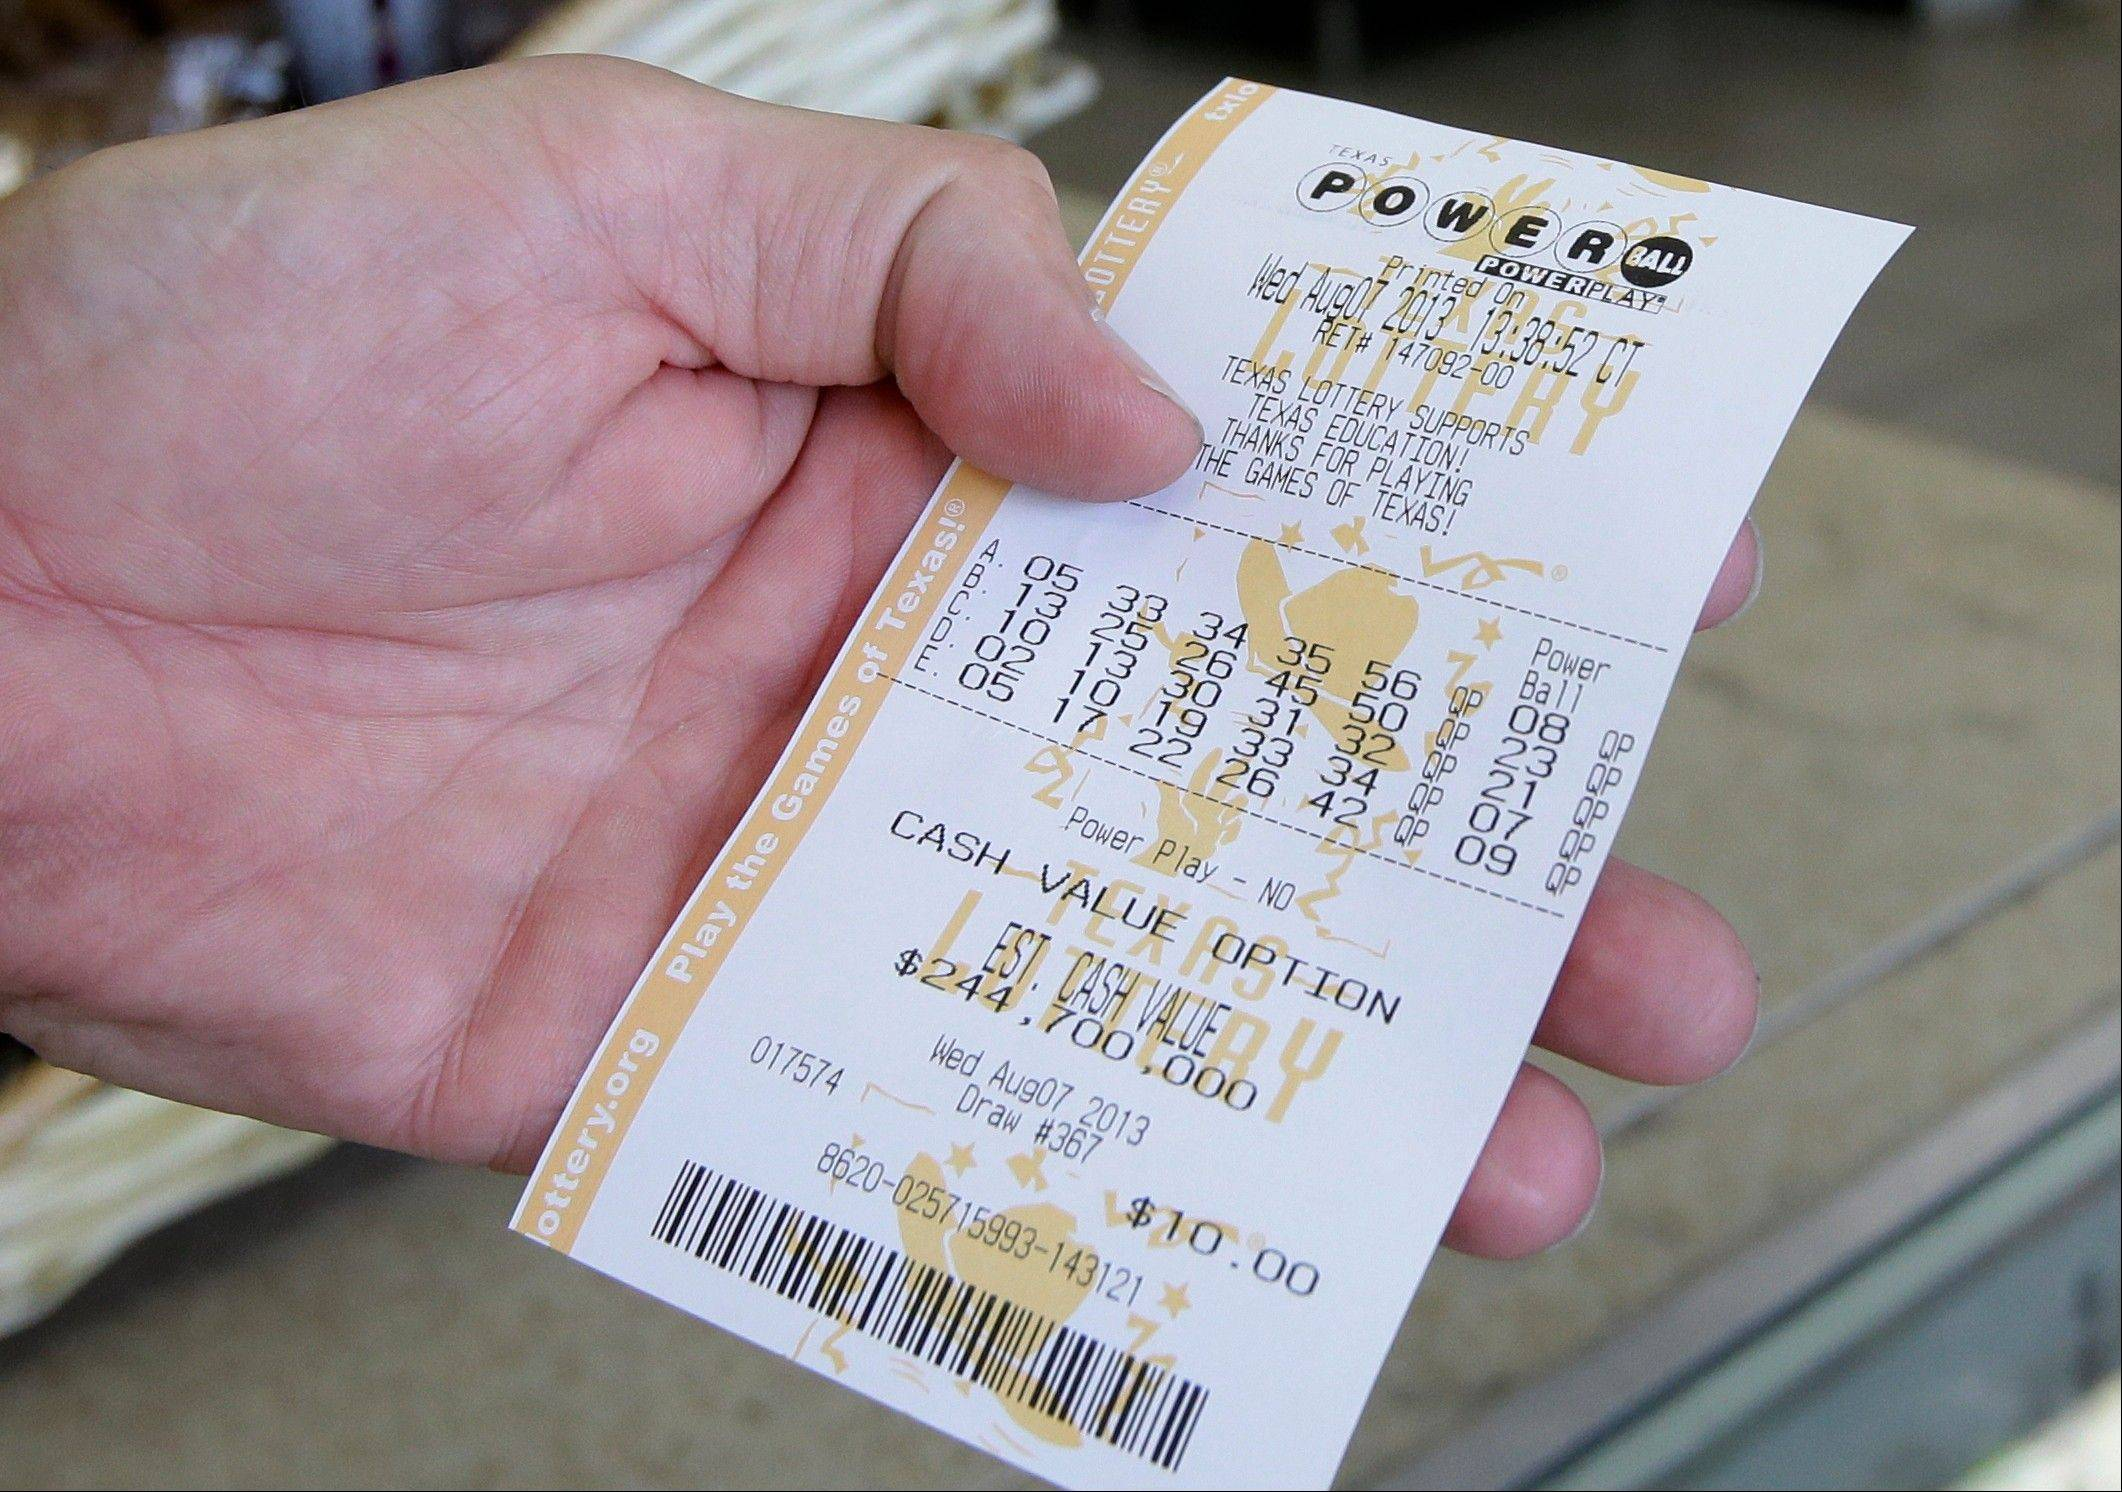 A customer reviews the numbers Wednesday after making a purchase on a Powerball ticket. The Powerball jackpot is expected to be about $425 million by Wednesday's drawing, making it the game's third largest ever.